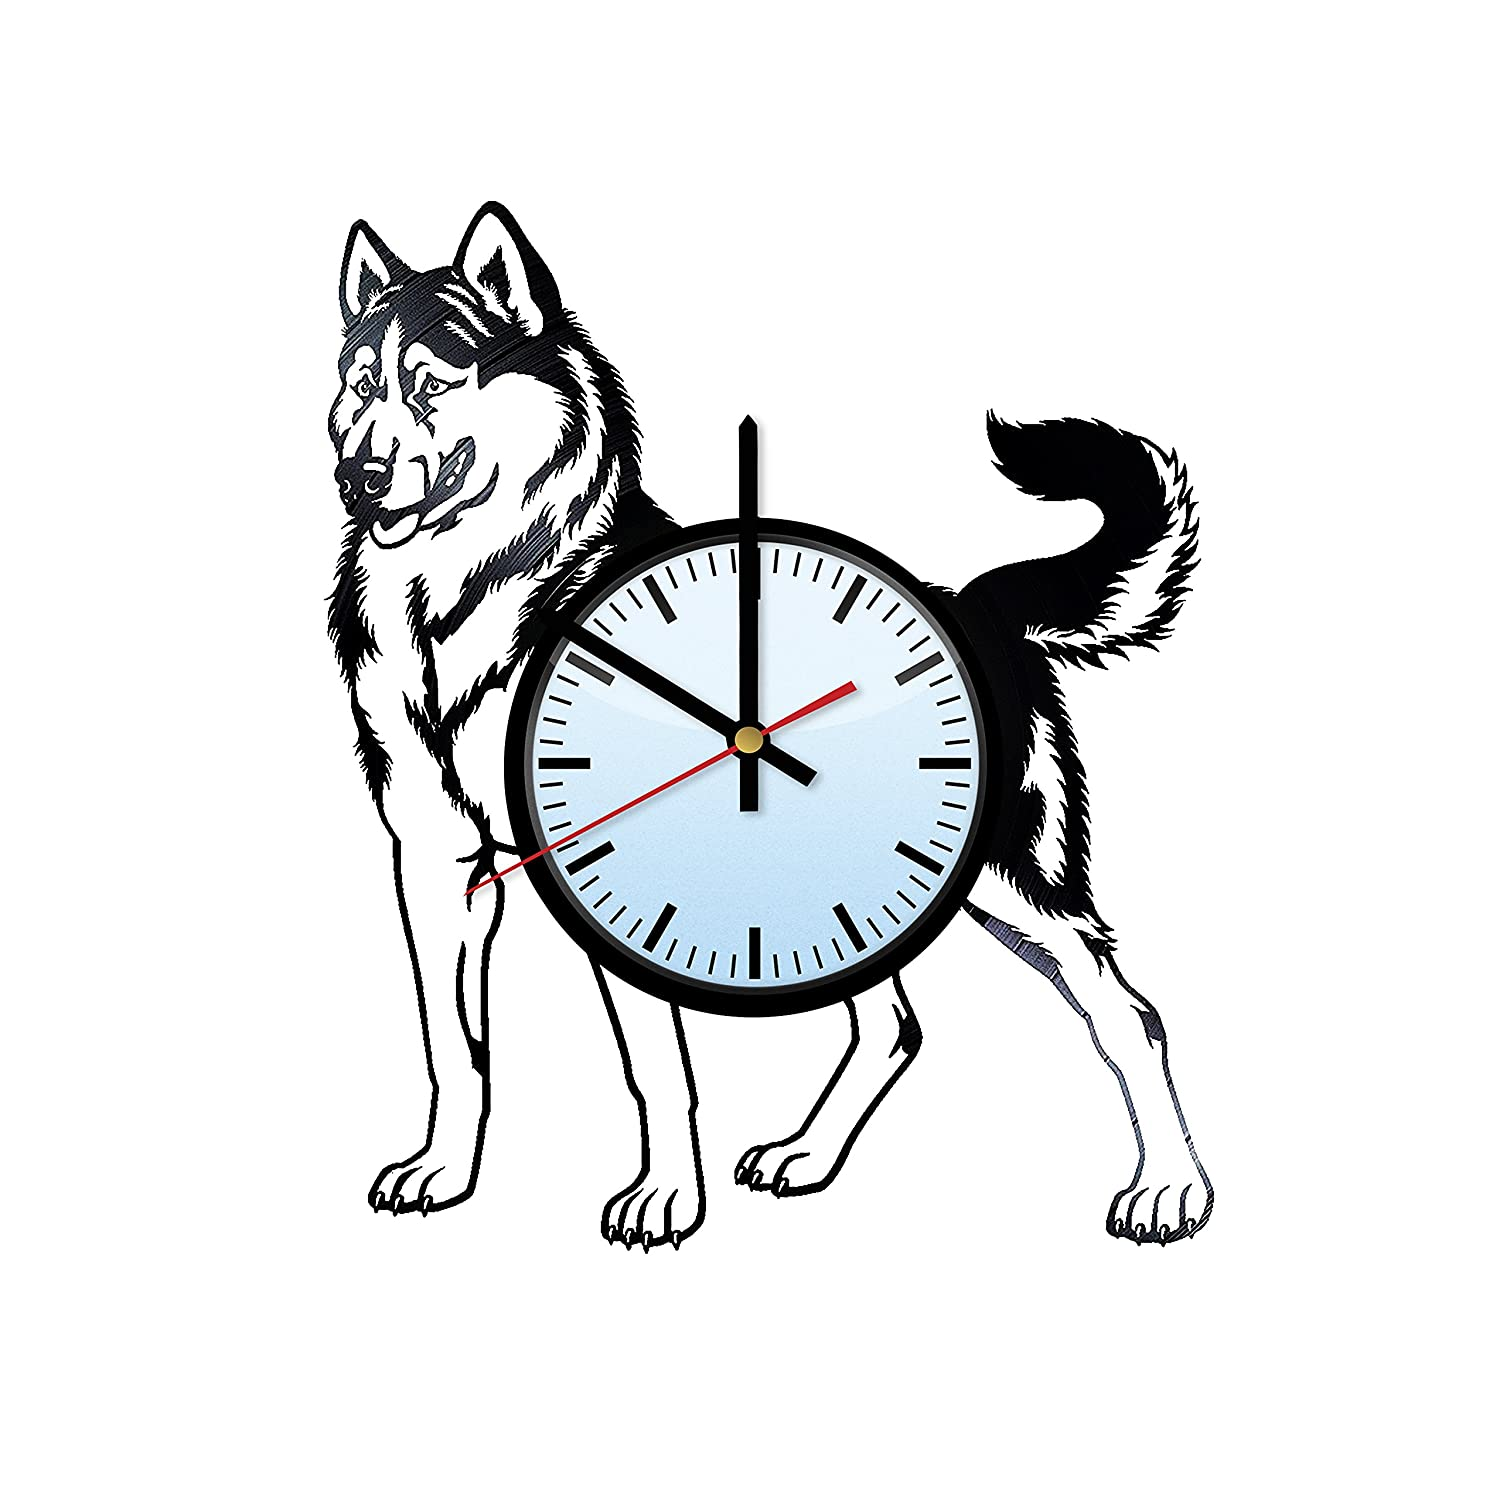 amazon husky style decor vinyl record wall clock unique Bon Jovi Hat husky style decor vinyl record wall clock unique decorative vinyl clock artwork unique home bedroom living room nursery wall decor great gifts idea for